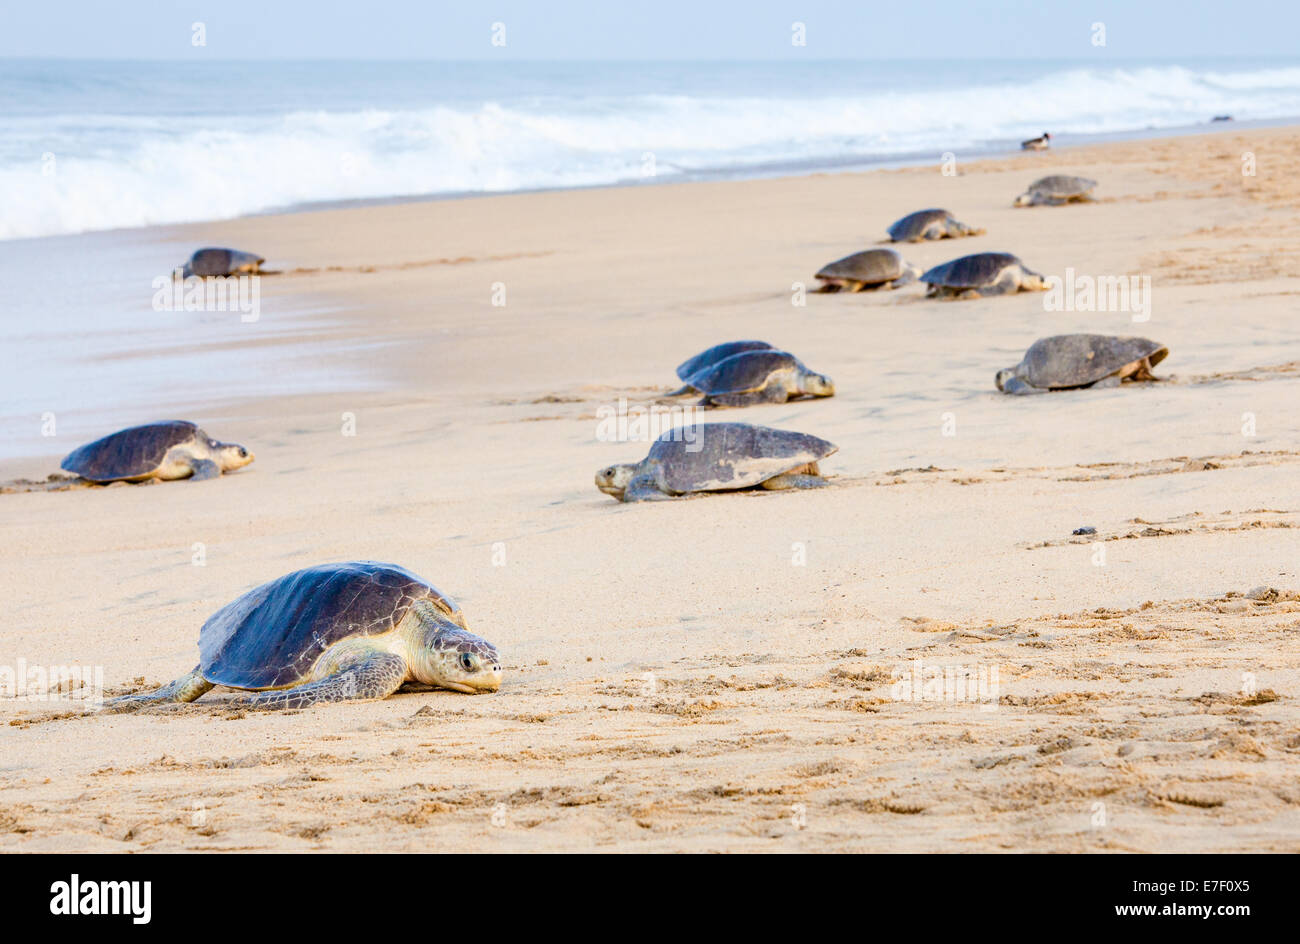 Adult Olive Ridley turtles come ashore to lay eggs on the beach at Ixtapilla, Michoacan, Mexico. - Stock Image